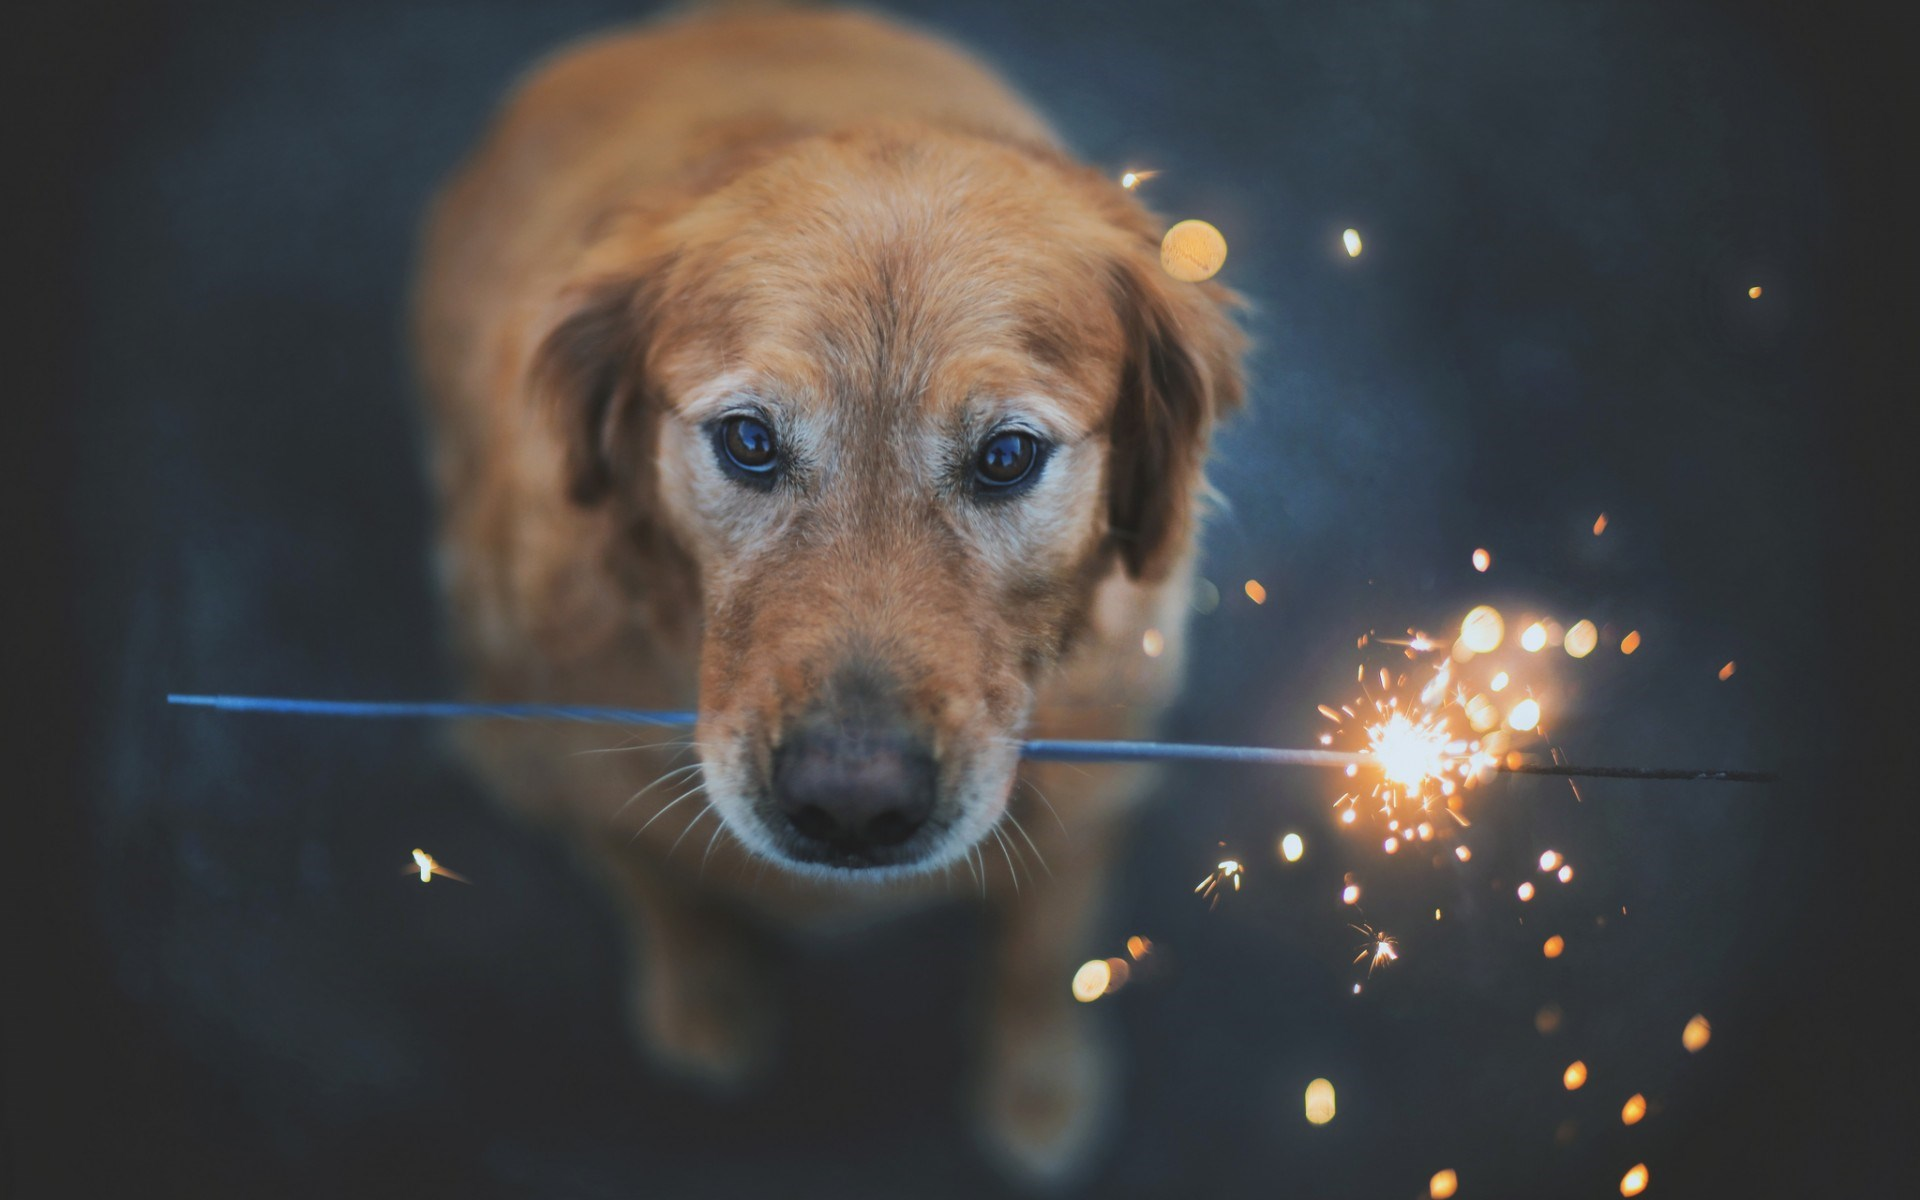 free dog images to download